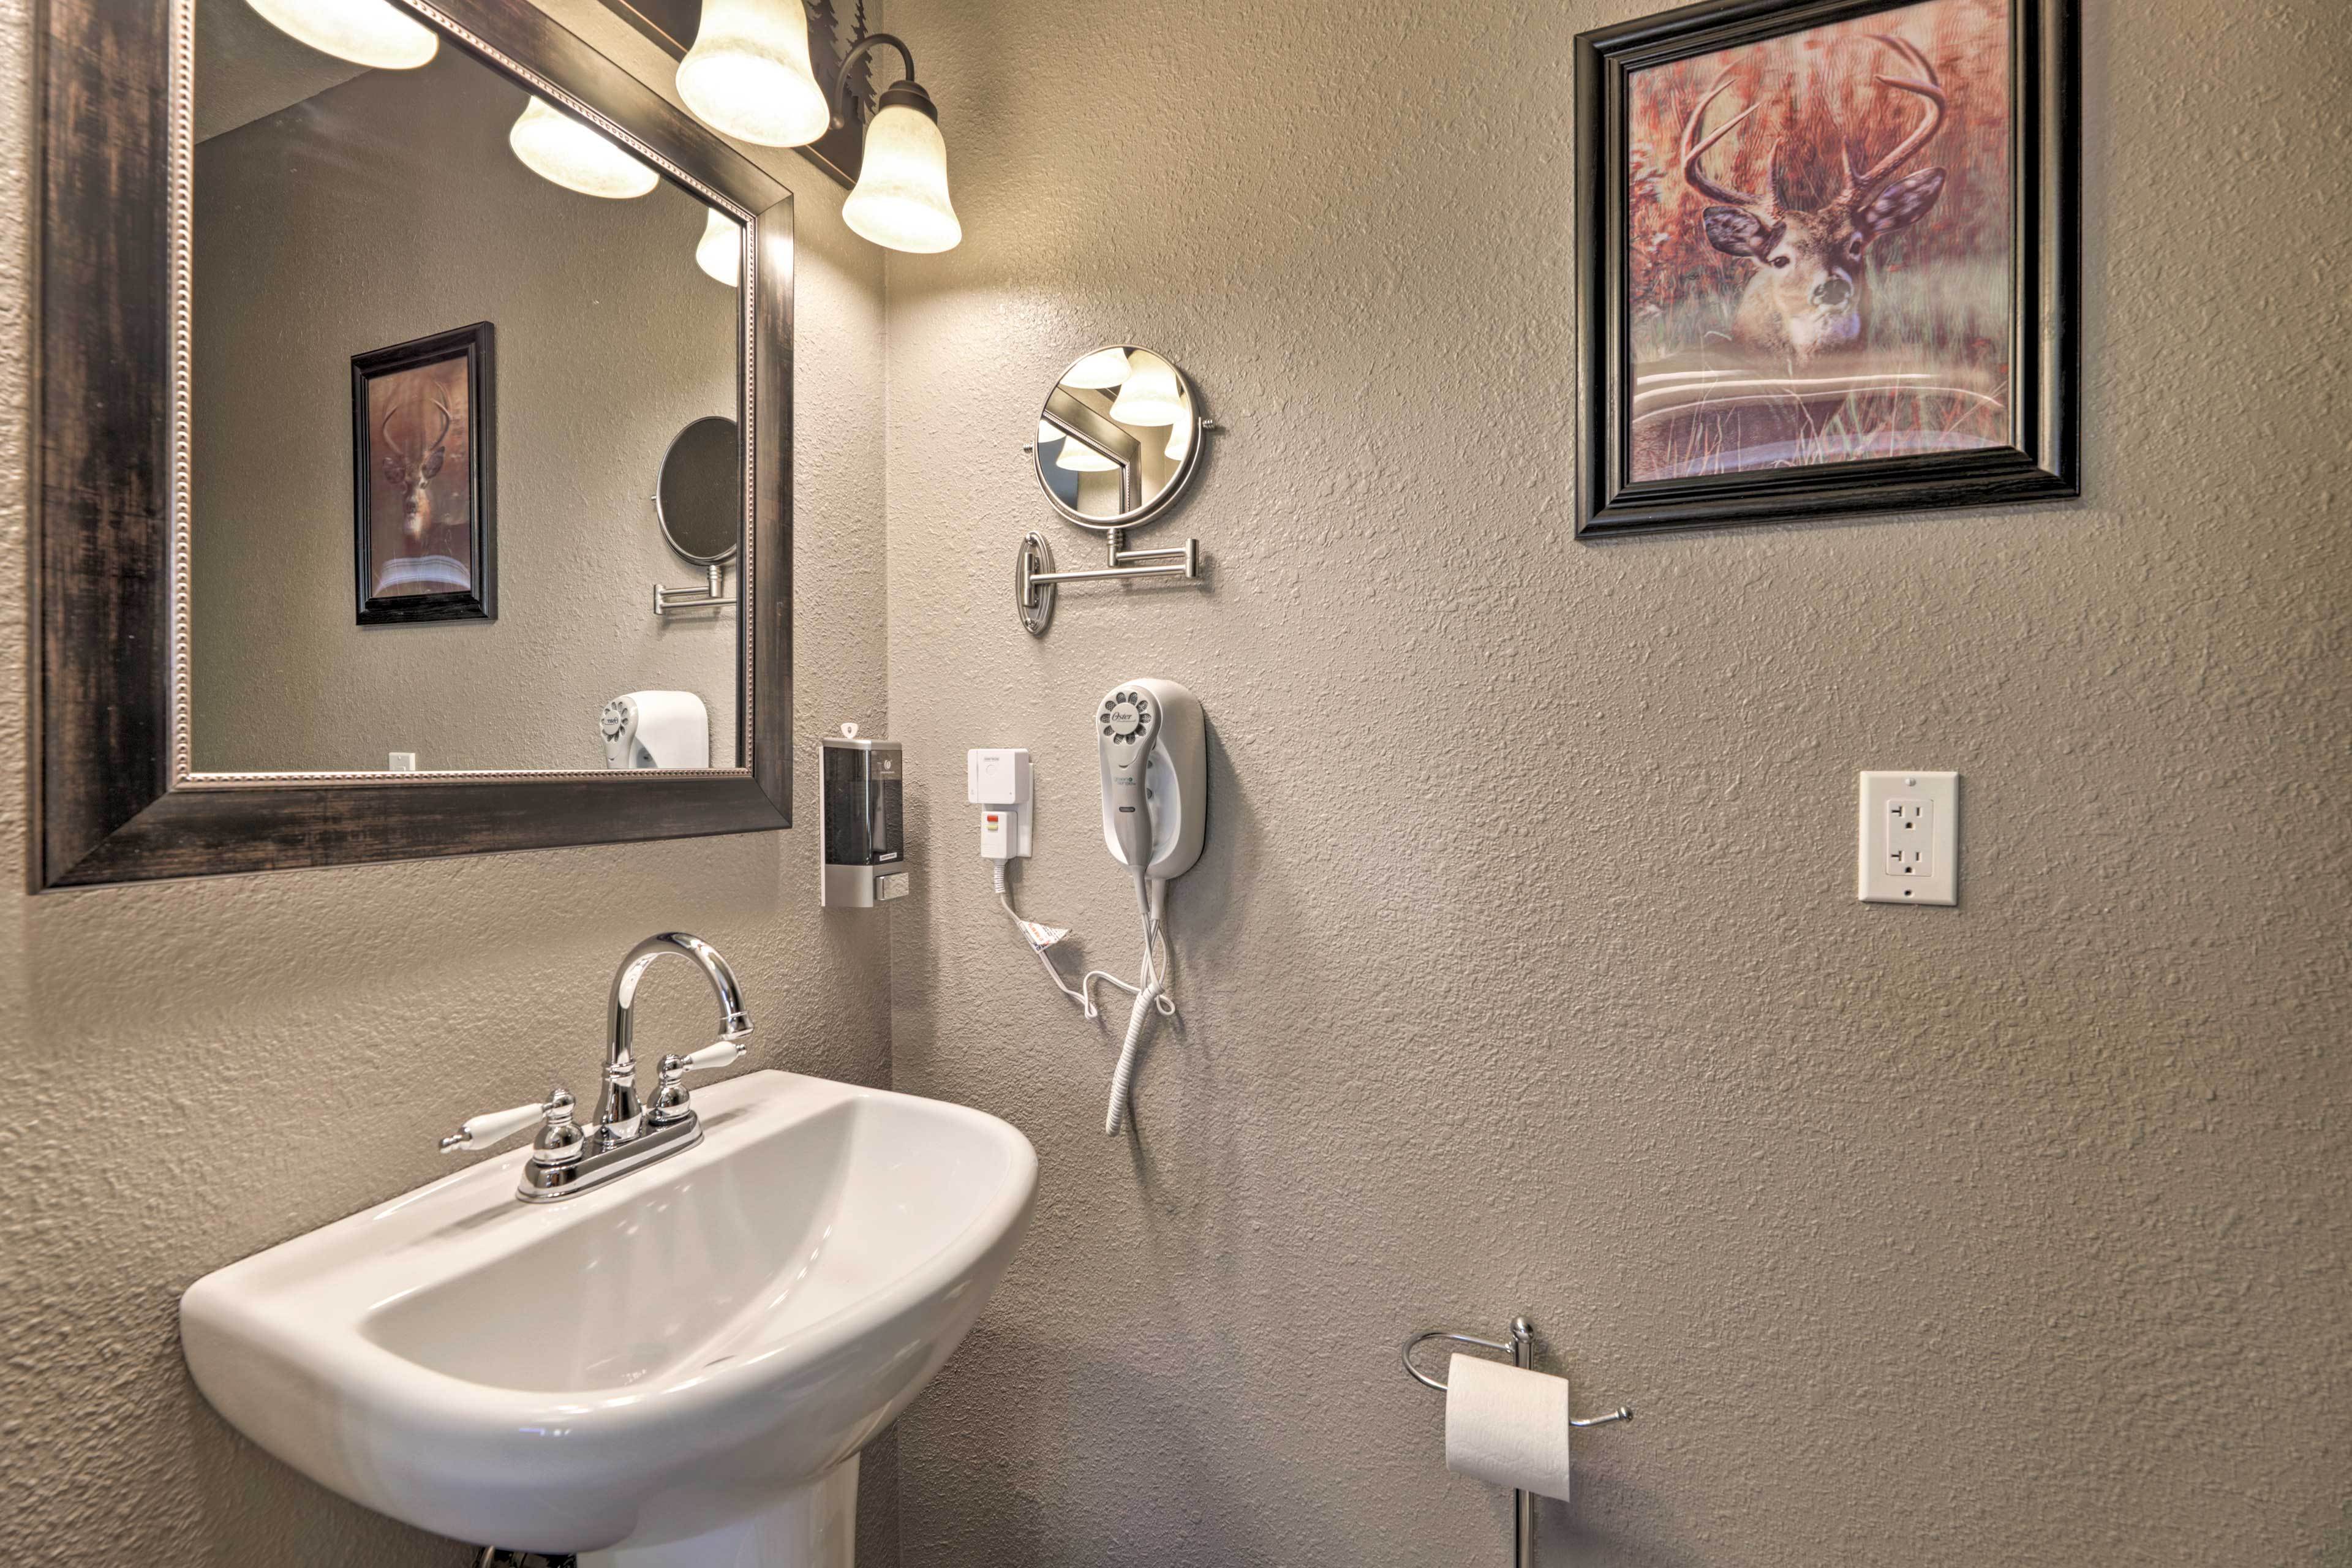 This home is equipped with 3 bathrooms.